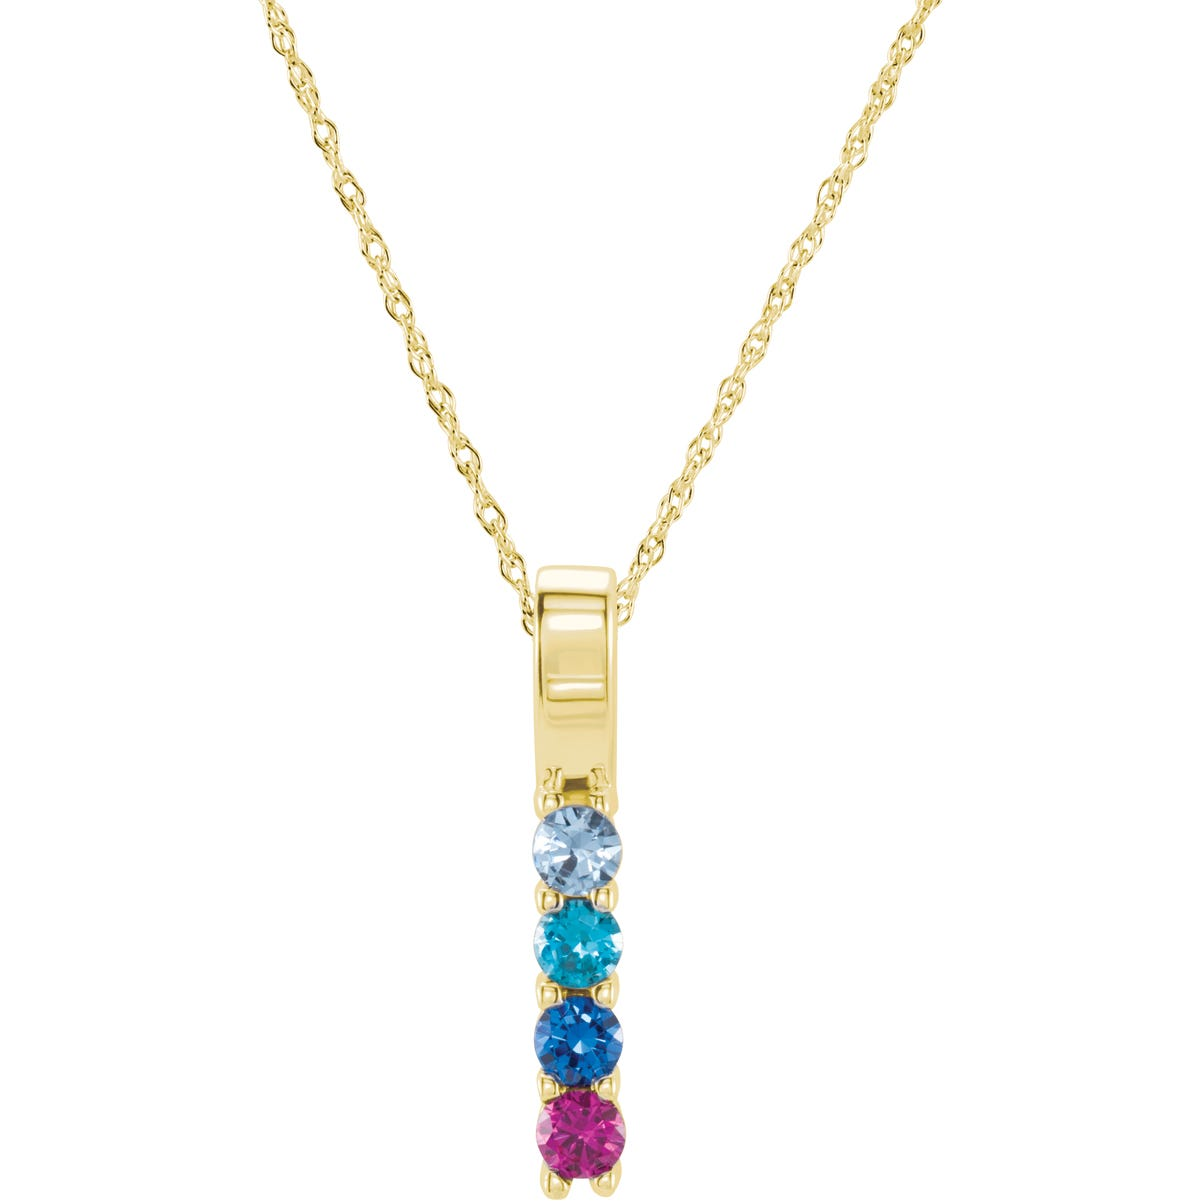 4-Stone Family Vertical Bar Pendant in 10k Yellow Gold